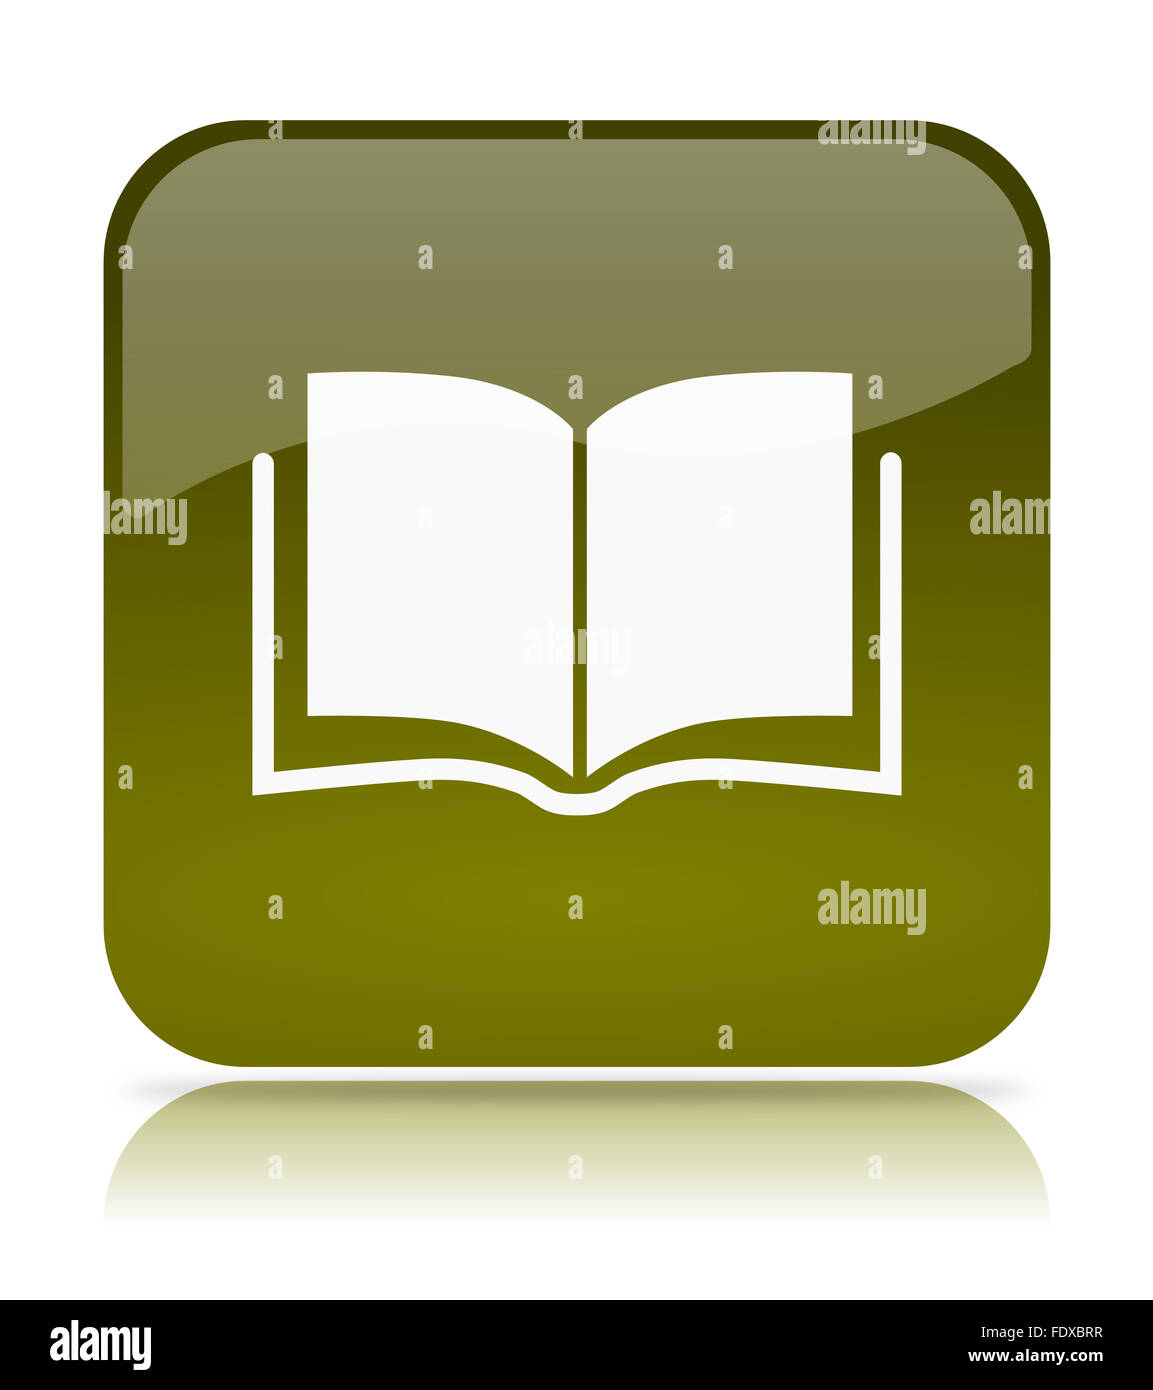 Green Book App Icon Illustration On White Background Stock Photo Alamy